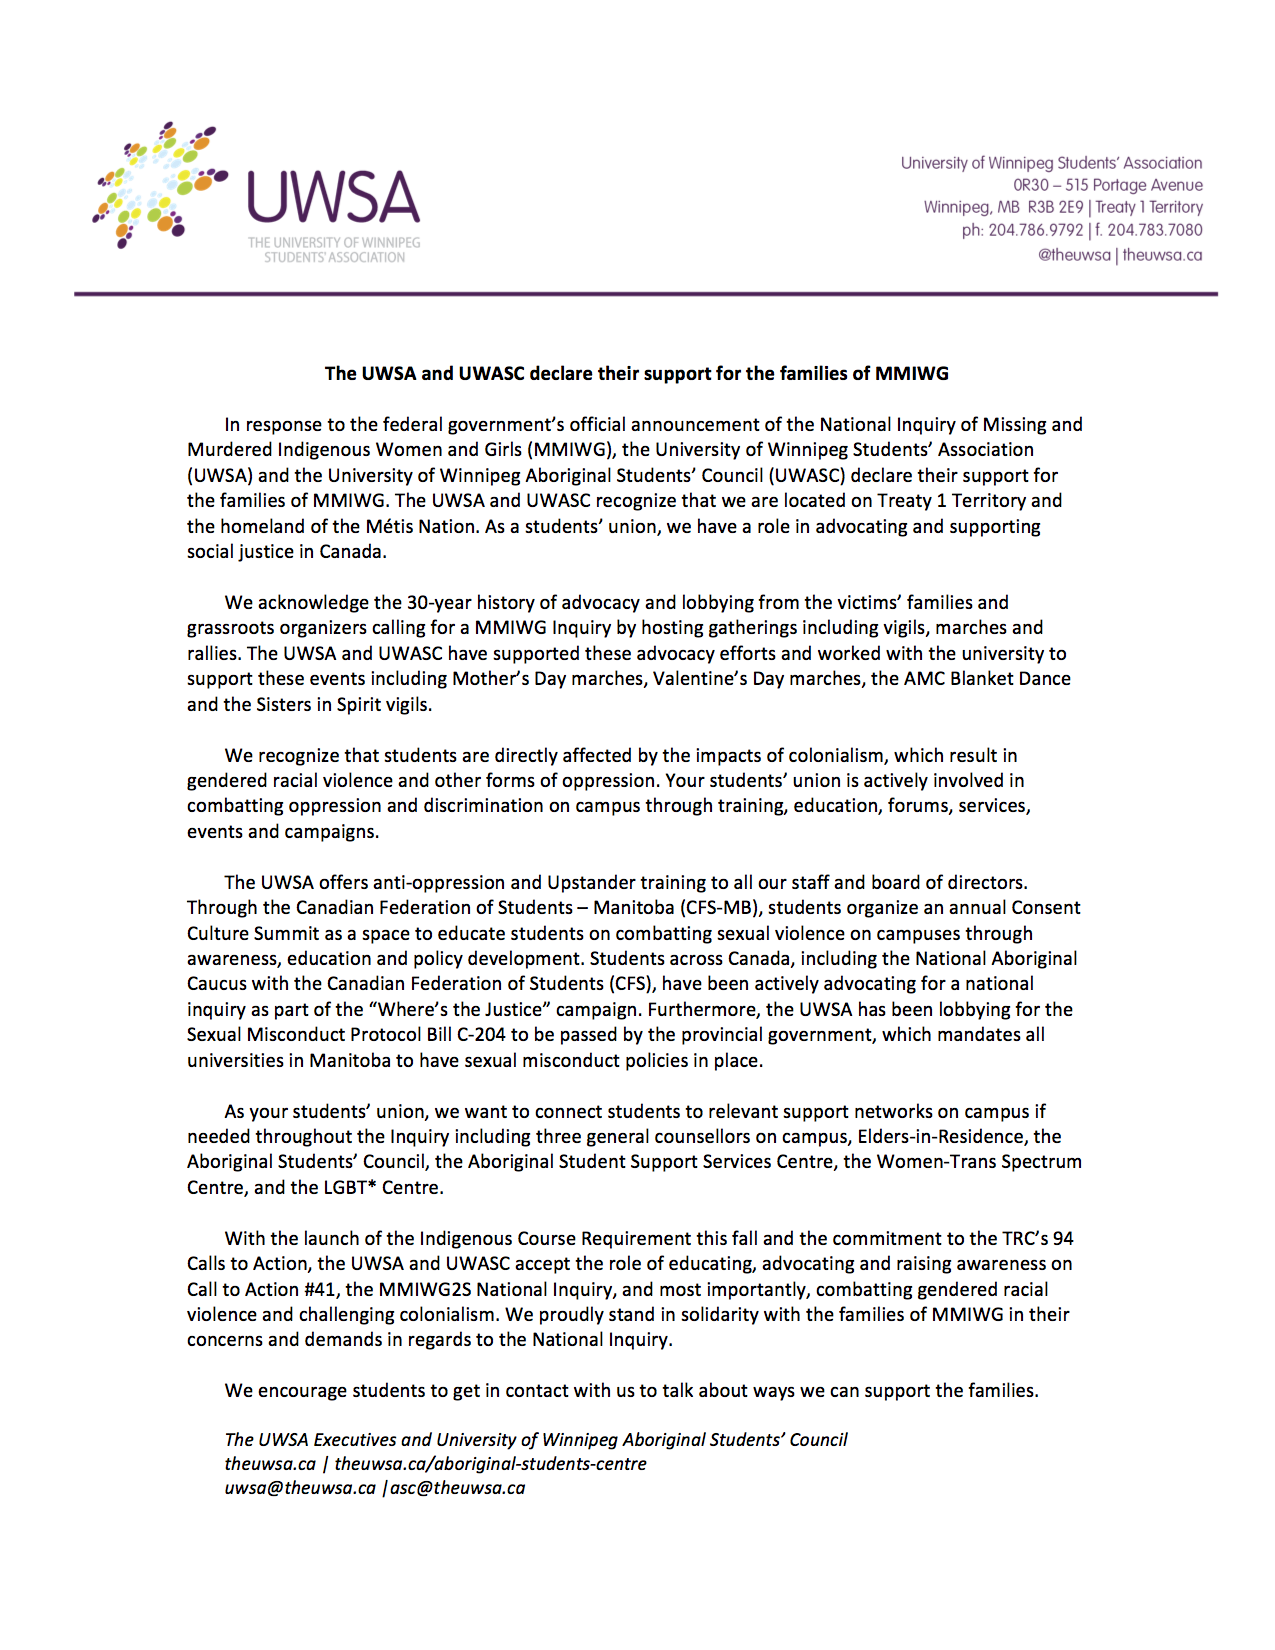 UWSA Statement MMIWG